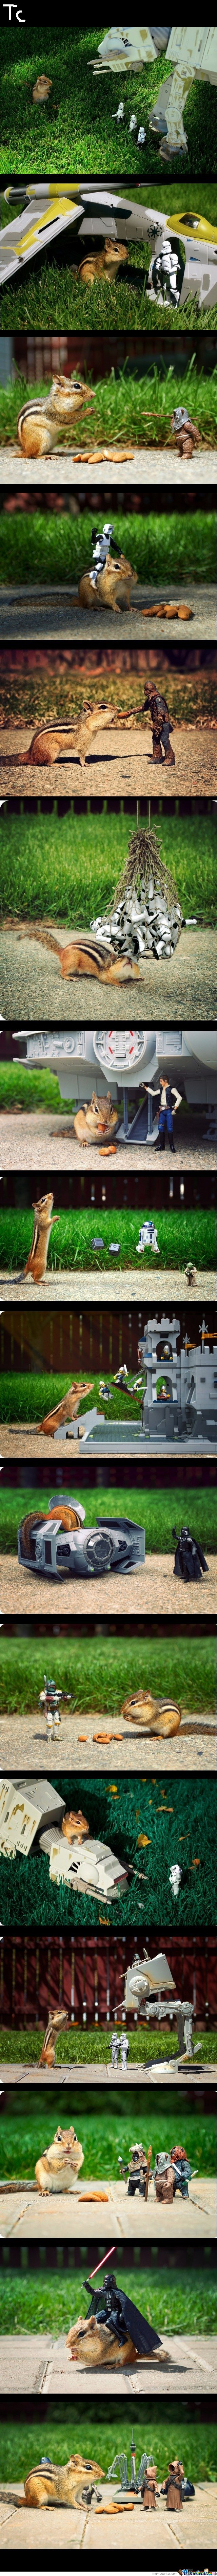 Chipmunk, Meet Star Wars